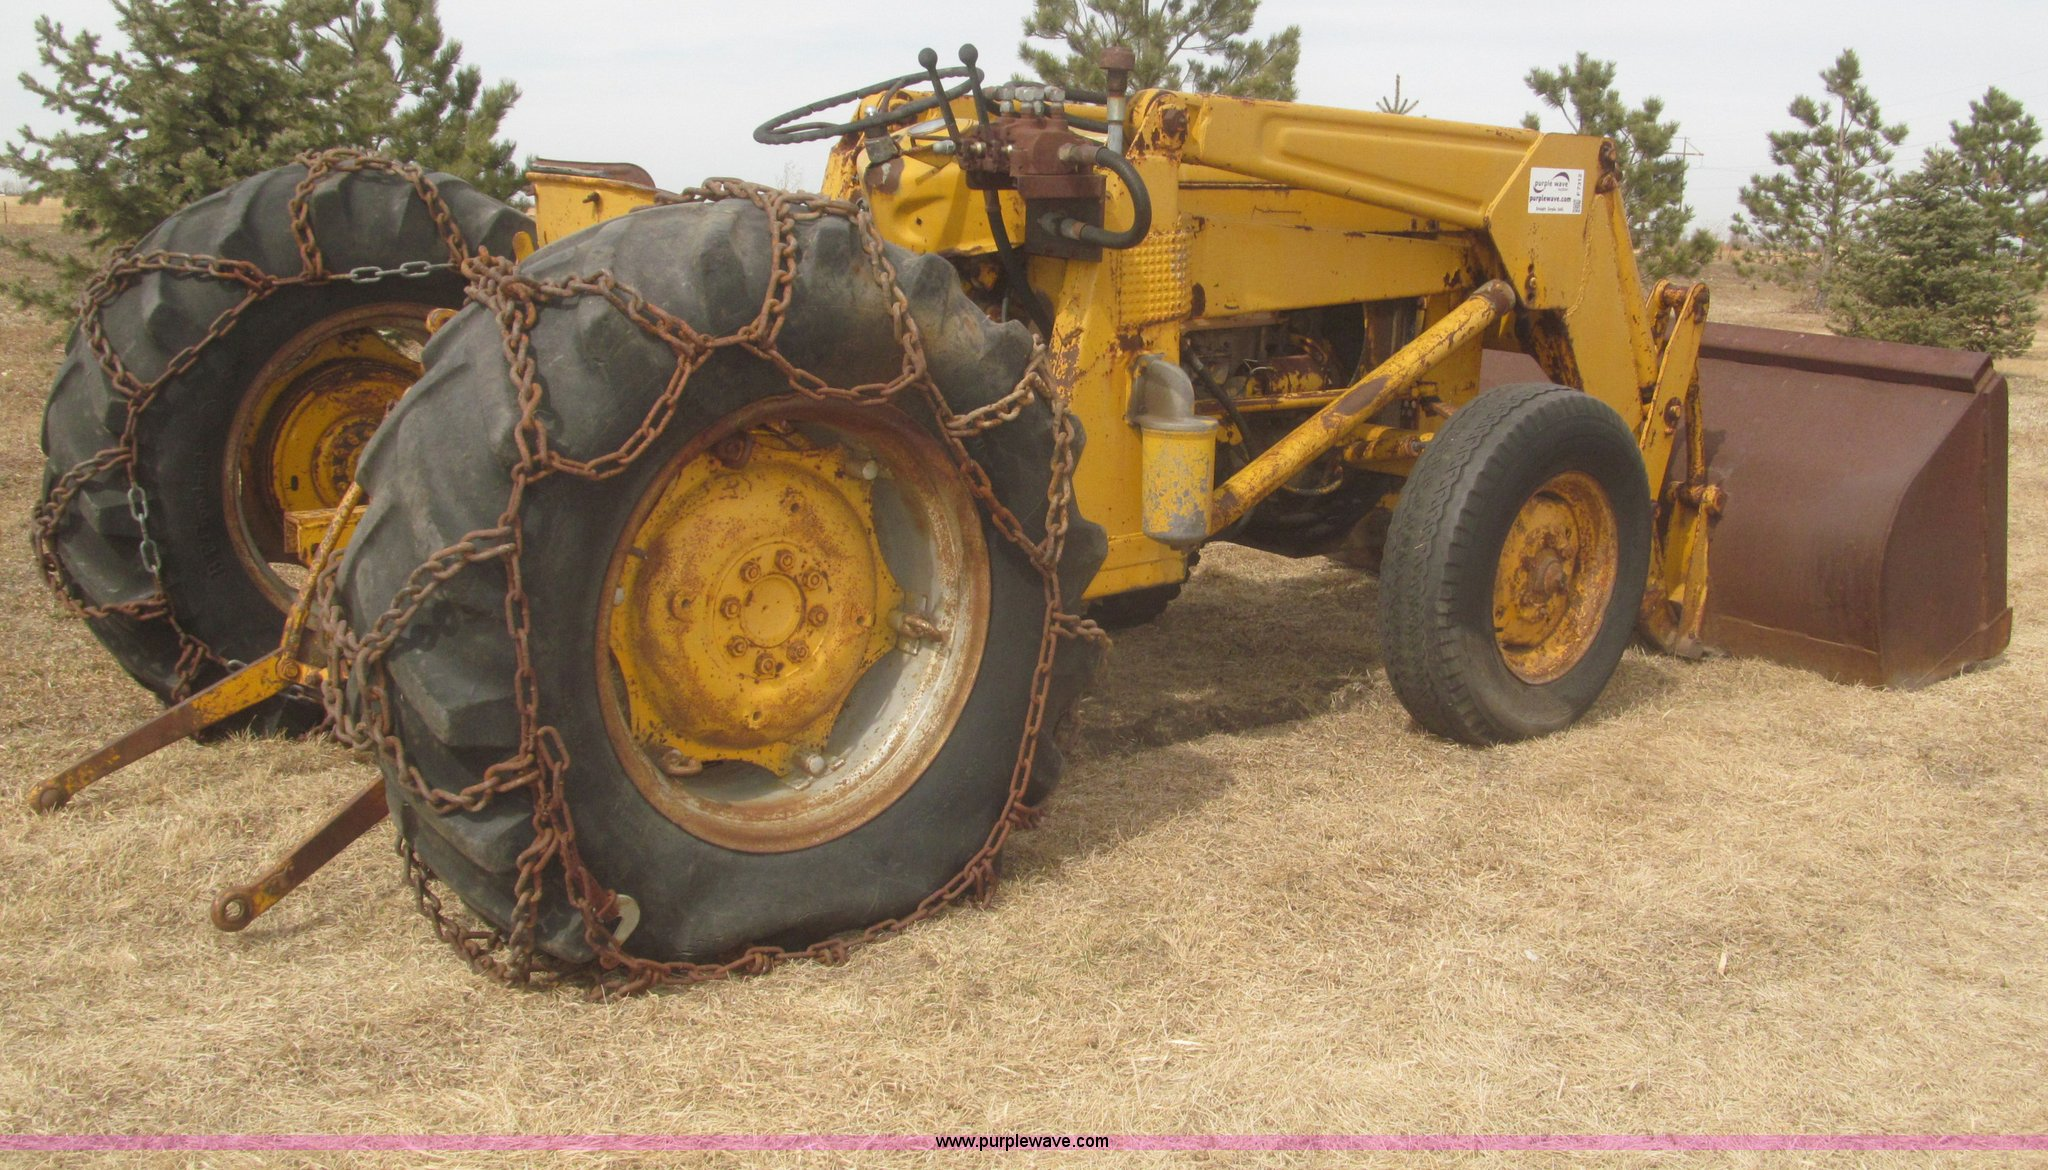 ... Massey-Ferguson Work Bull MF204 industrial tractor with loader Full  size in new window ...